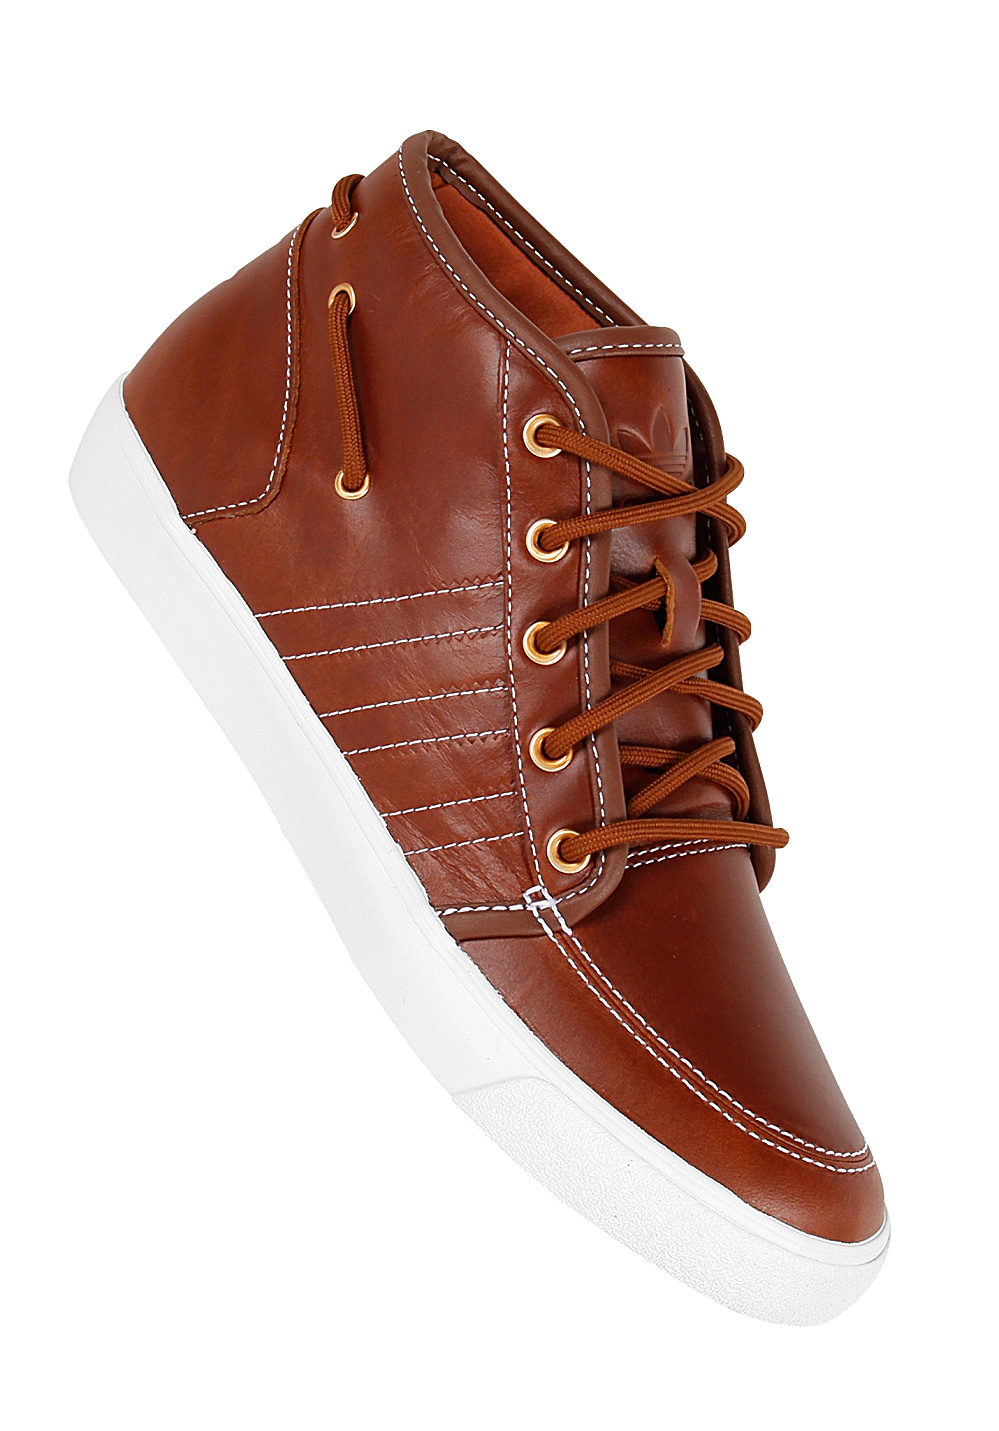 quality design 47d09 31794 ADIDAS Court Deck Vulc Mid - Sneakers for Men - Brown - Plan